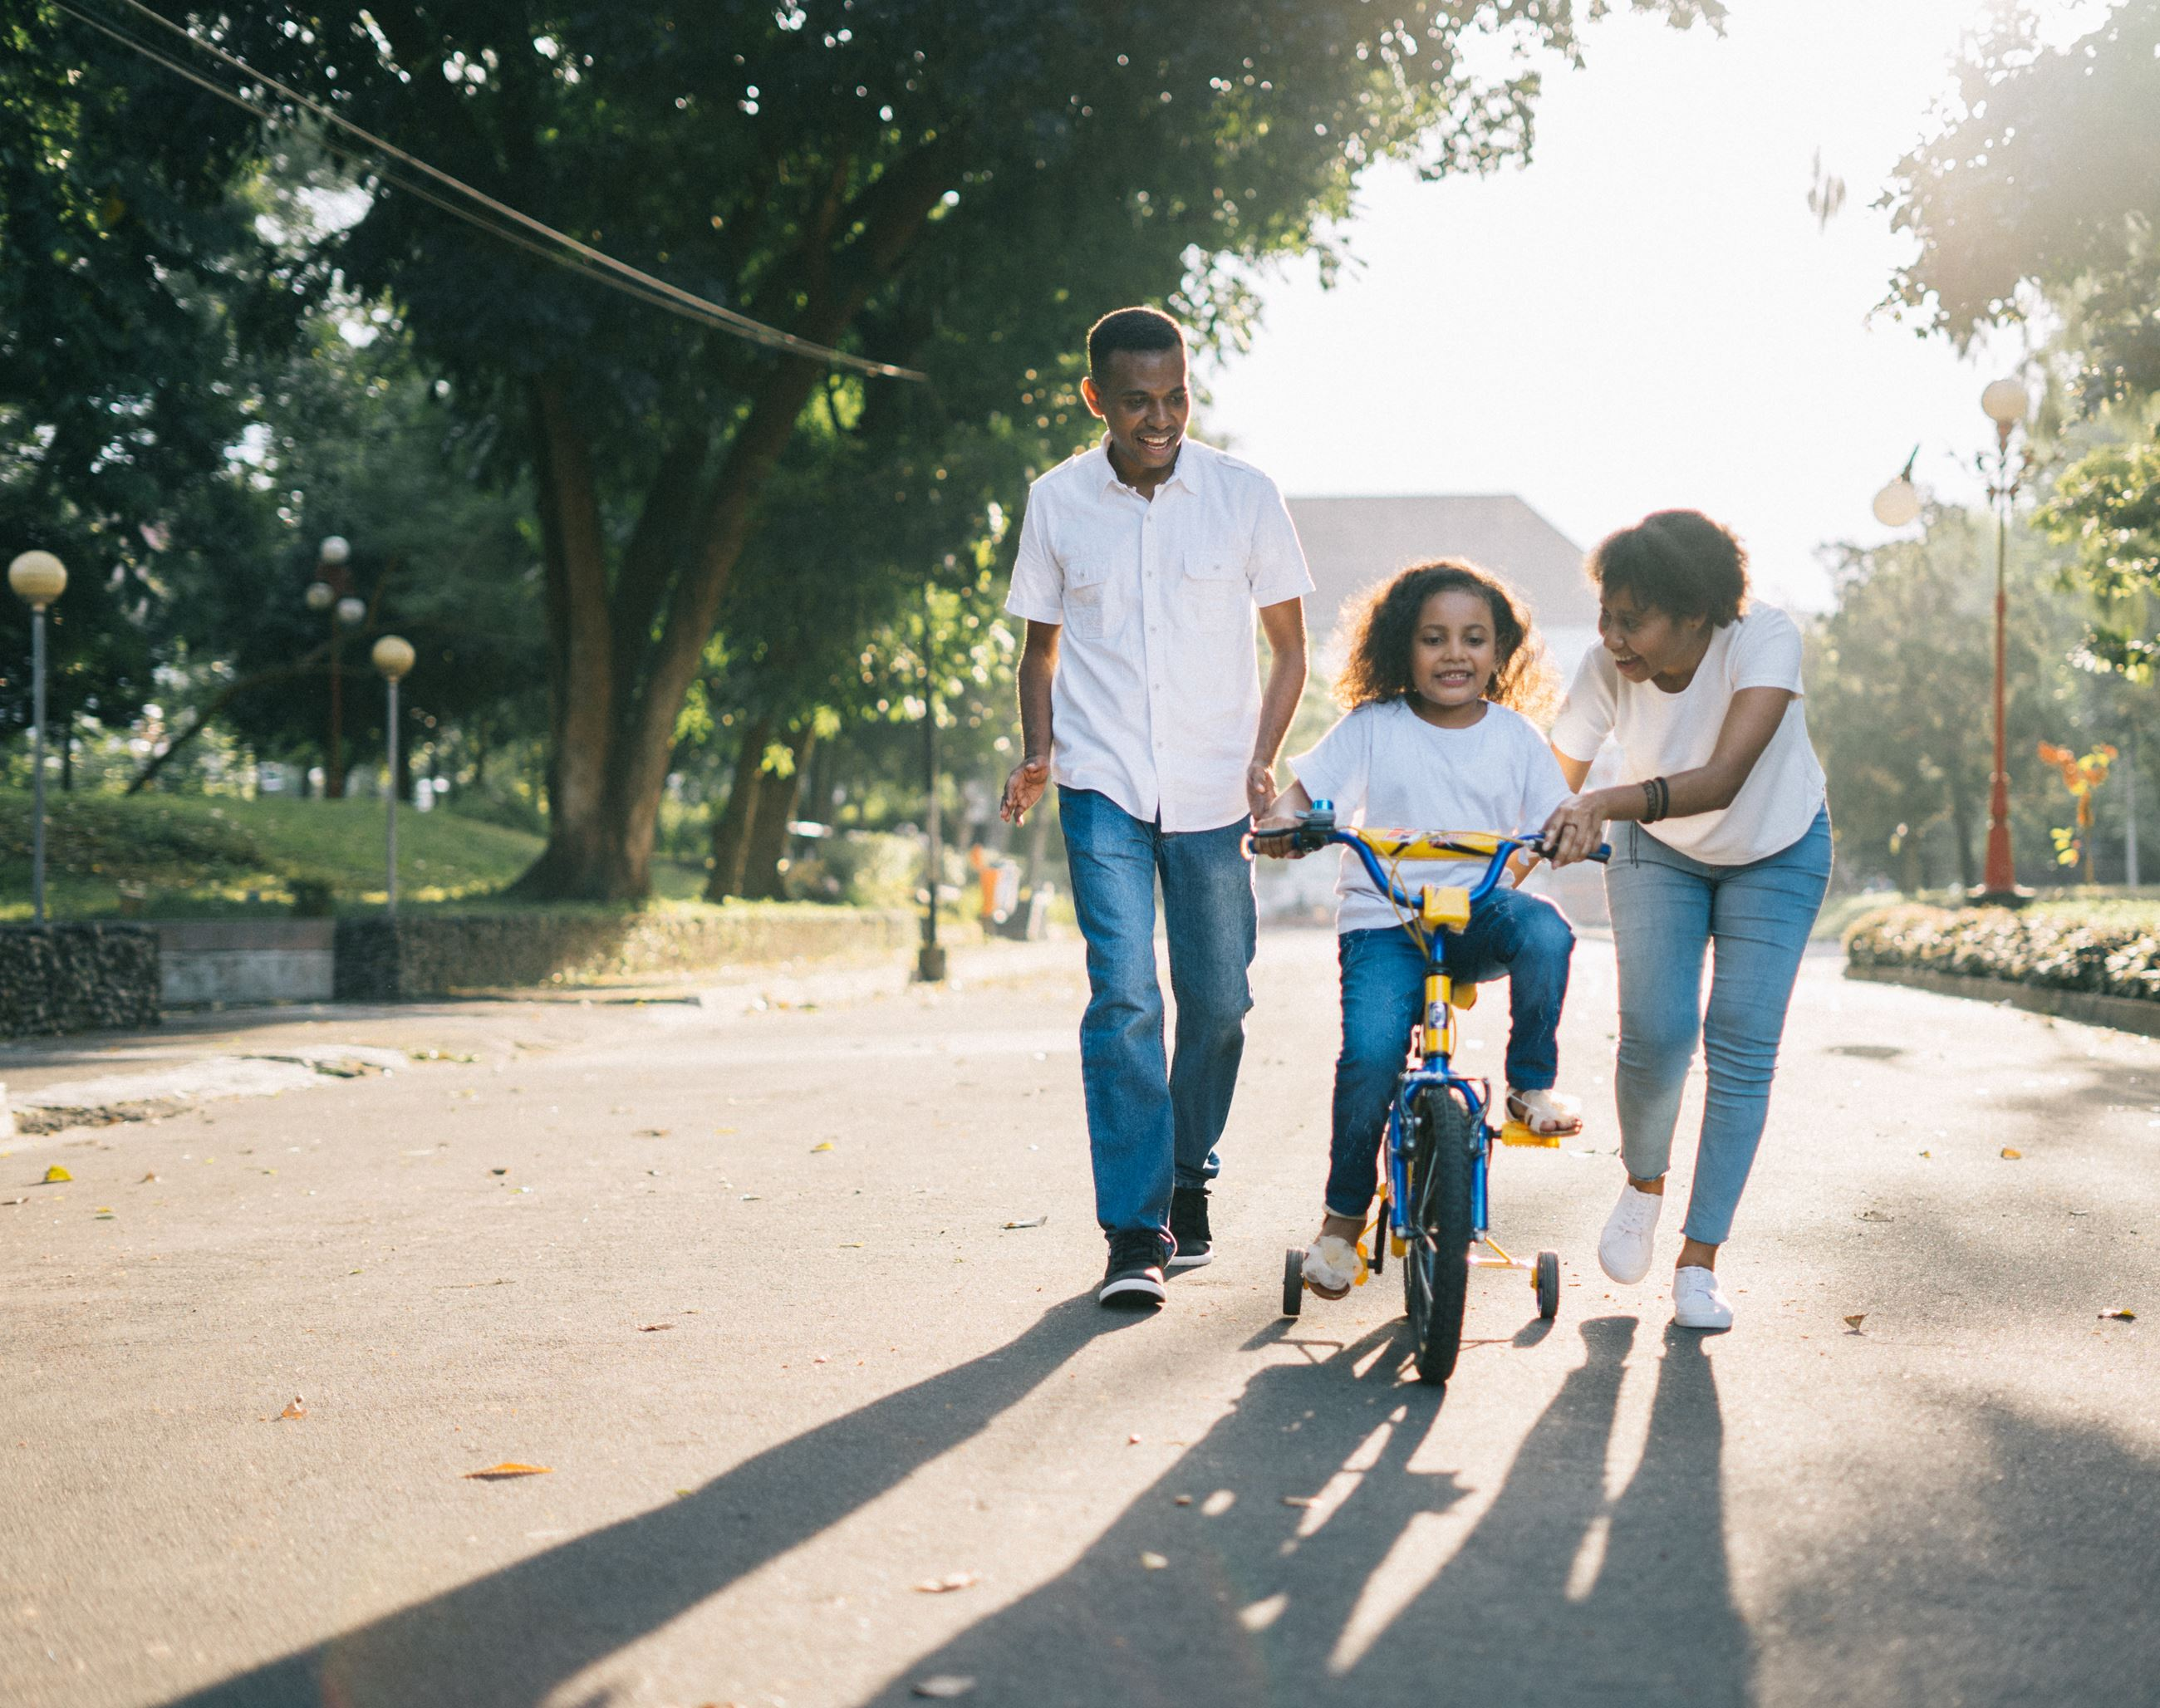 family child bike riding